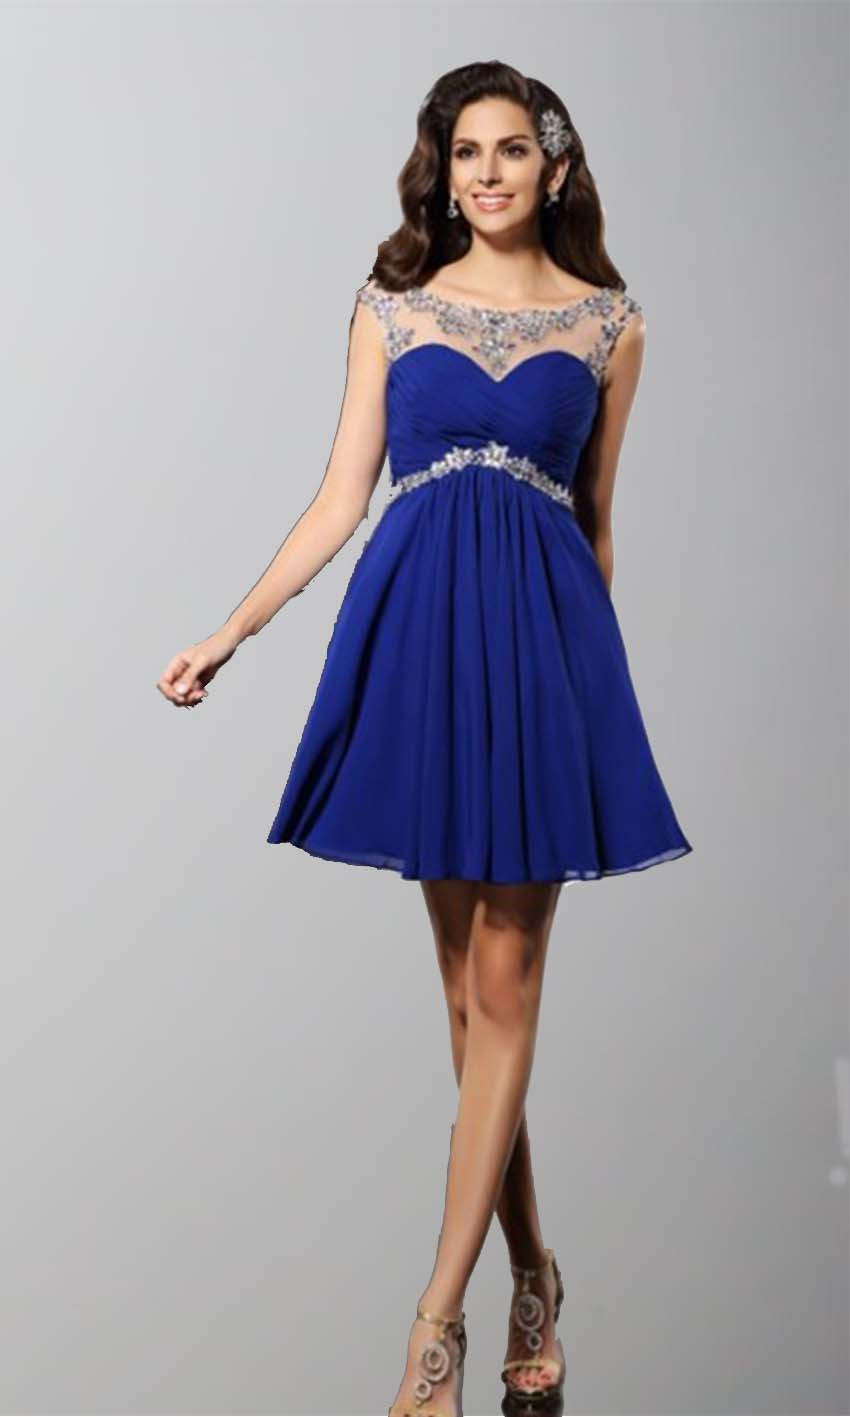 Blue Illusion Short Lace Prom Dresses UK KSP347 [KSP347] - £87.00 ...